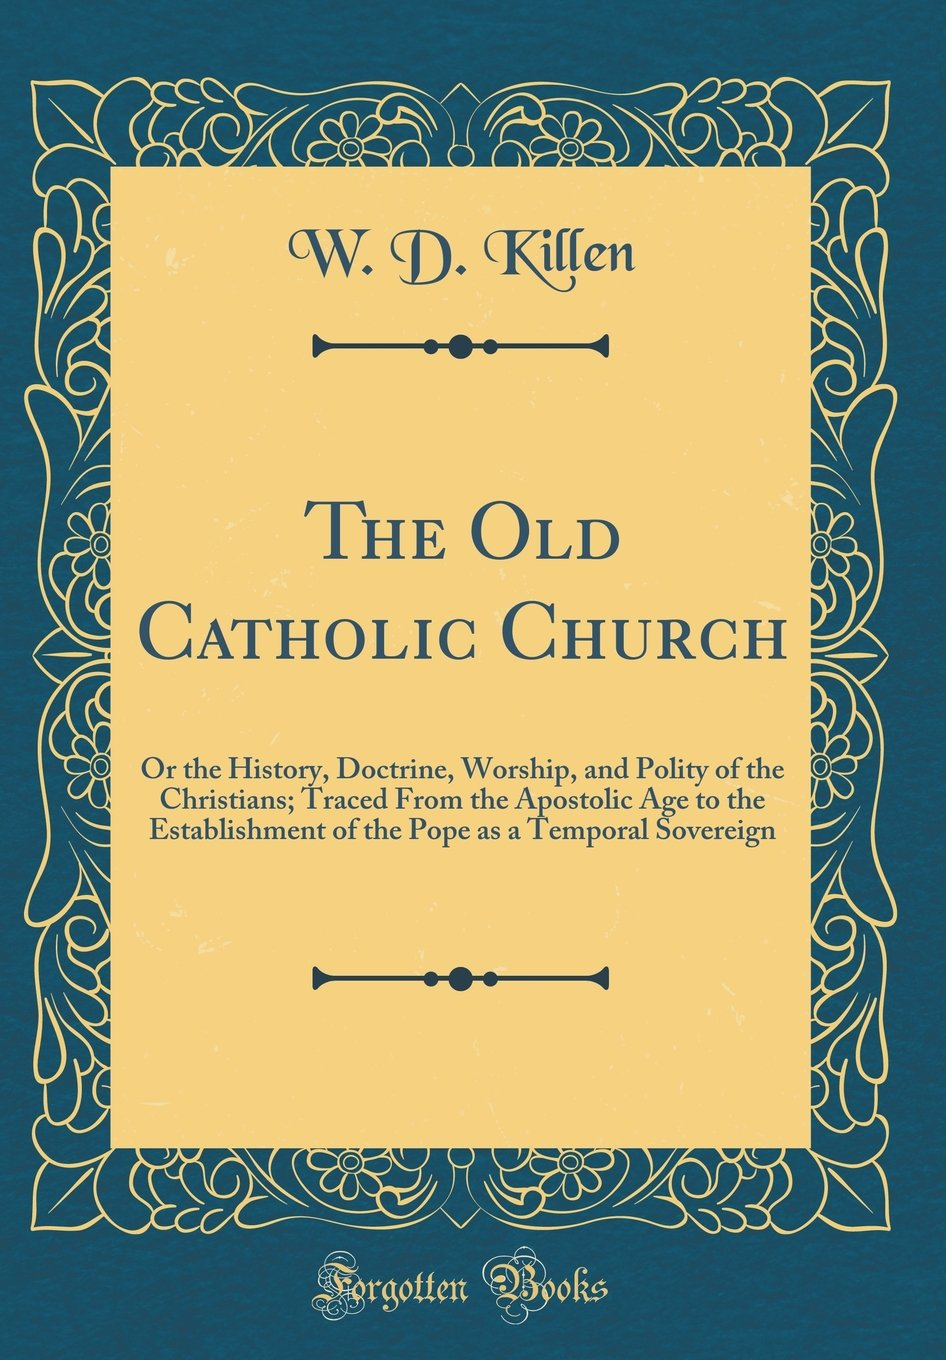 The Old Catholic Church: Or the History, Doctrine, Worship, and Polity of the Christians; Traced From the Apostolic Age to the Establishment of the Pope as a Temporal Sovereign (Classic Reprint) pdf